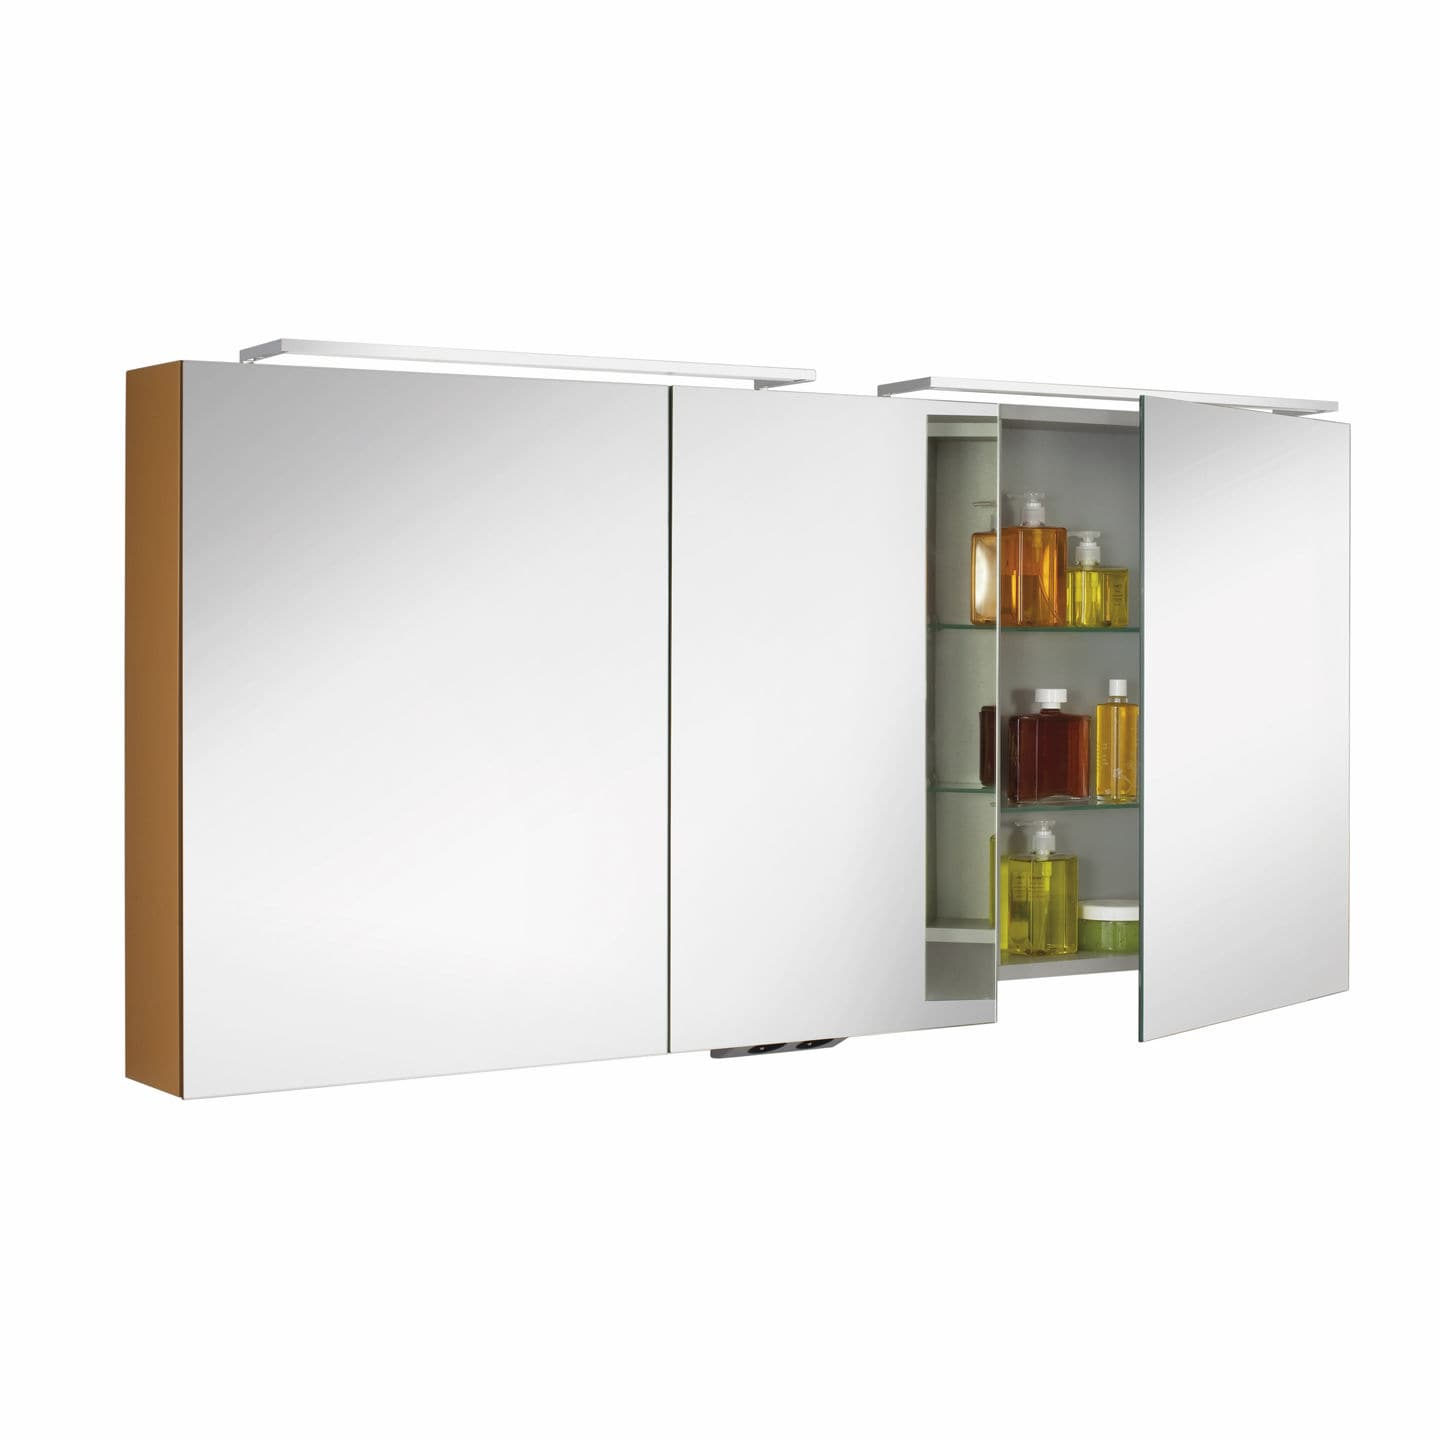 Bathroom wall cabinet with mirror - Mirrored Bathroom Wall Cabinet Glossy Box